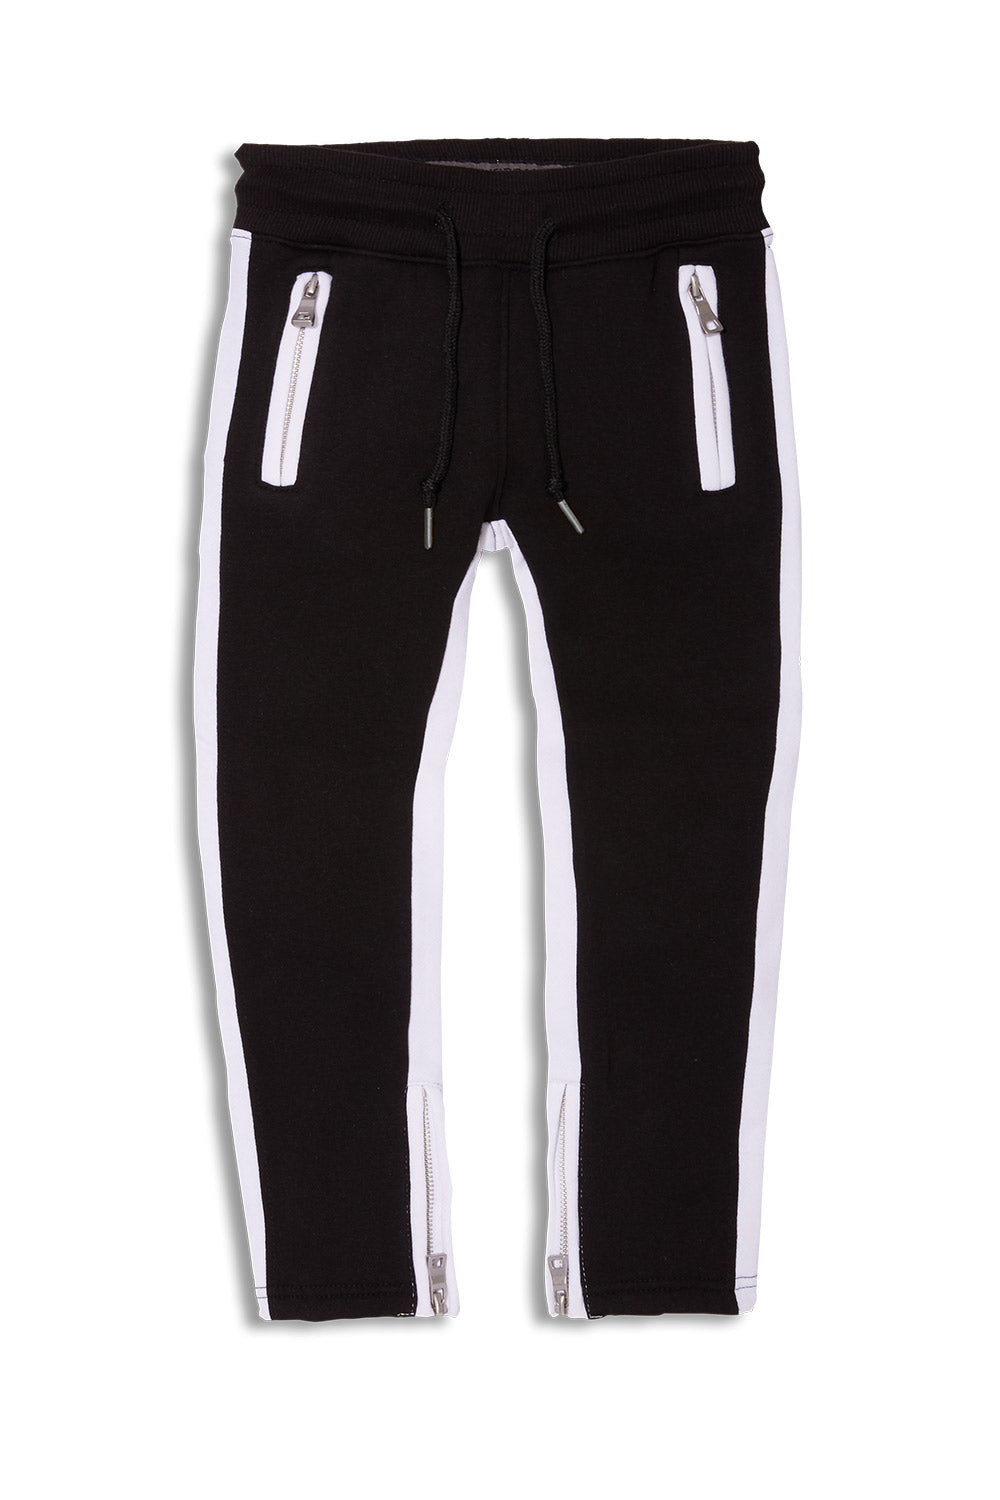 Jordan Craig - Kids Essential Fleece Track Pants (Black)